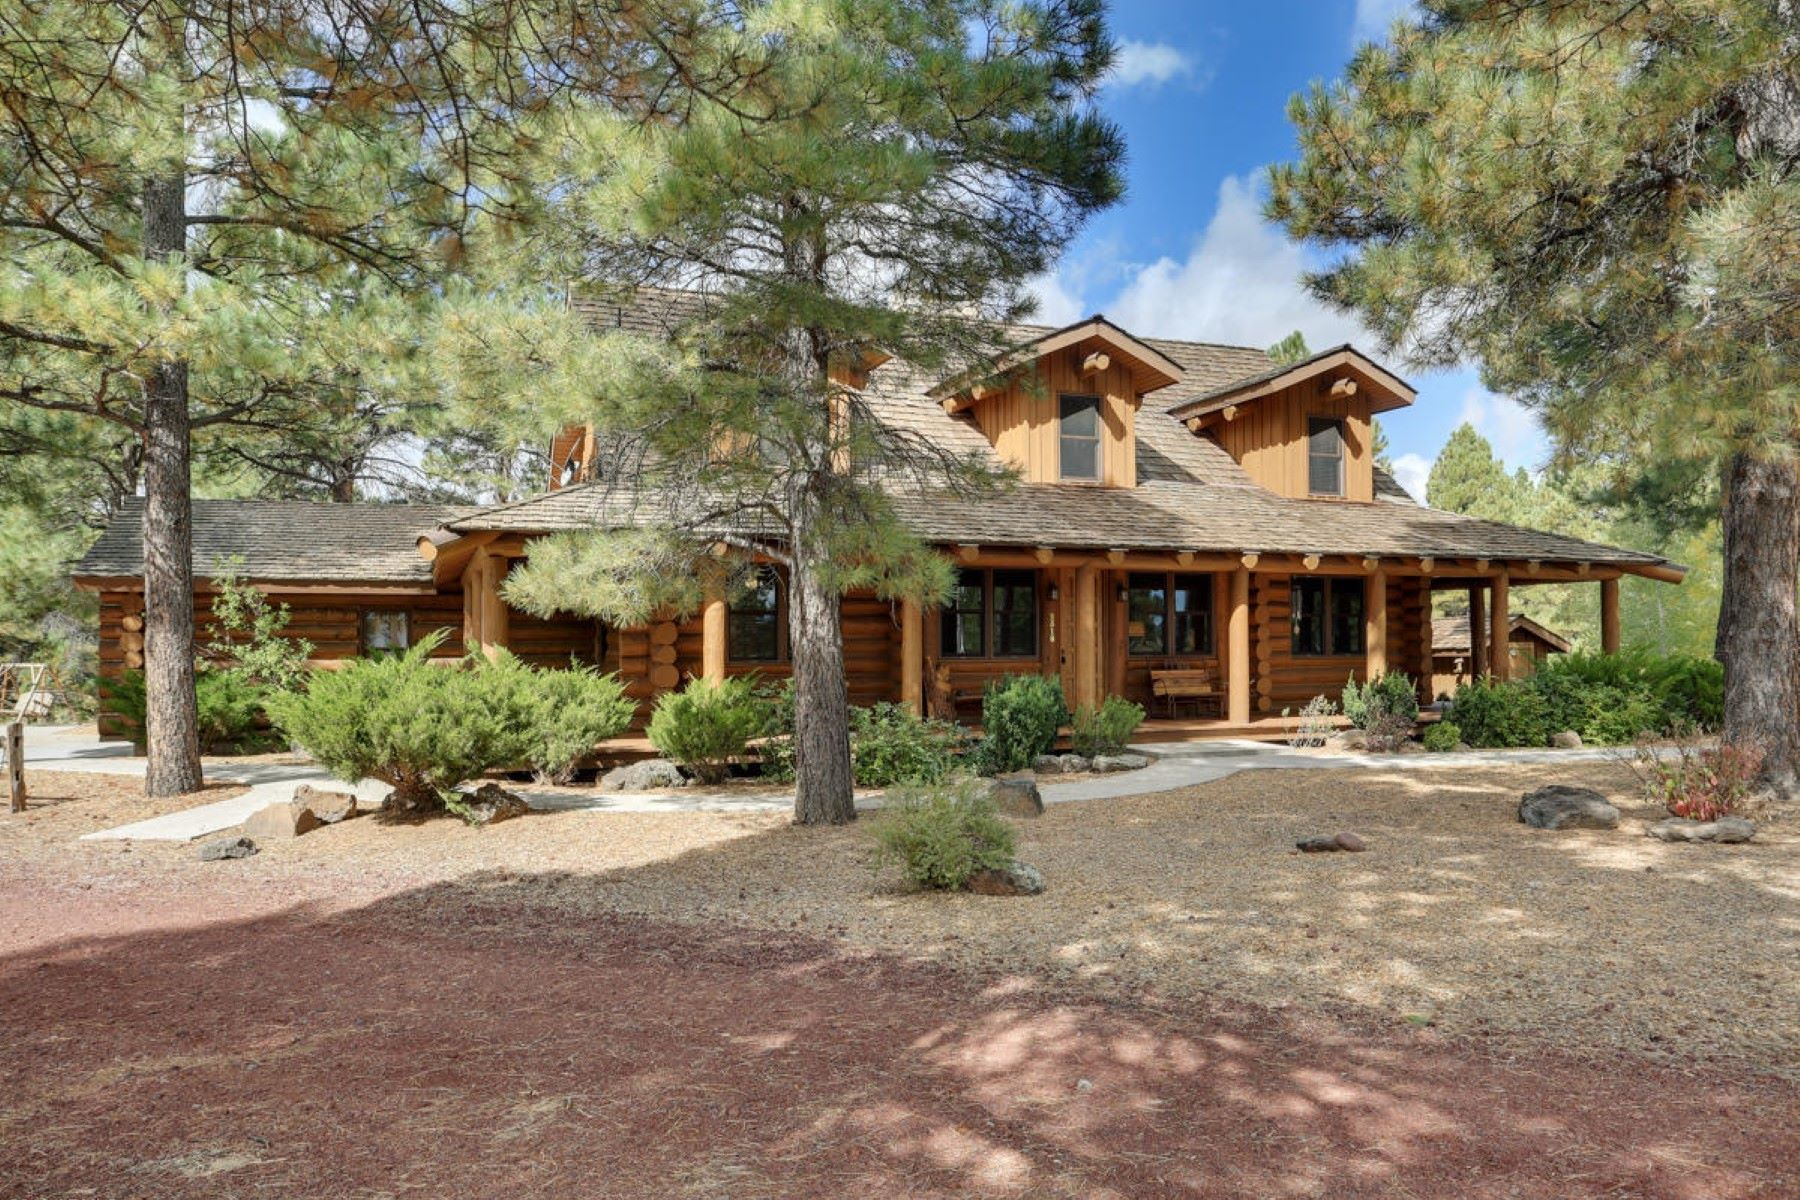 Single Family Homes for Sale at Luxury Log Home 2518 S Pine Aire DR Parks, Arizona 86018 United States